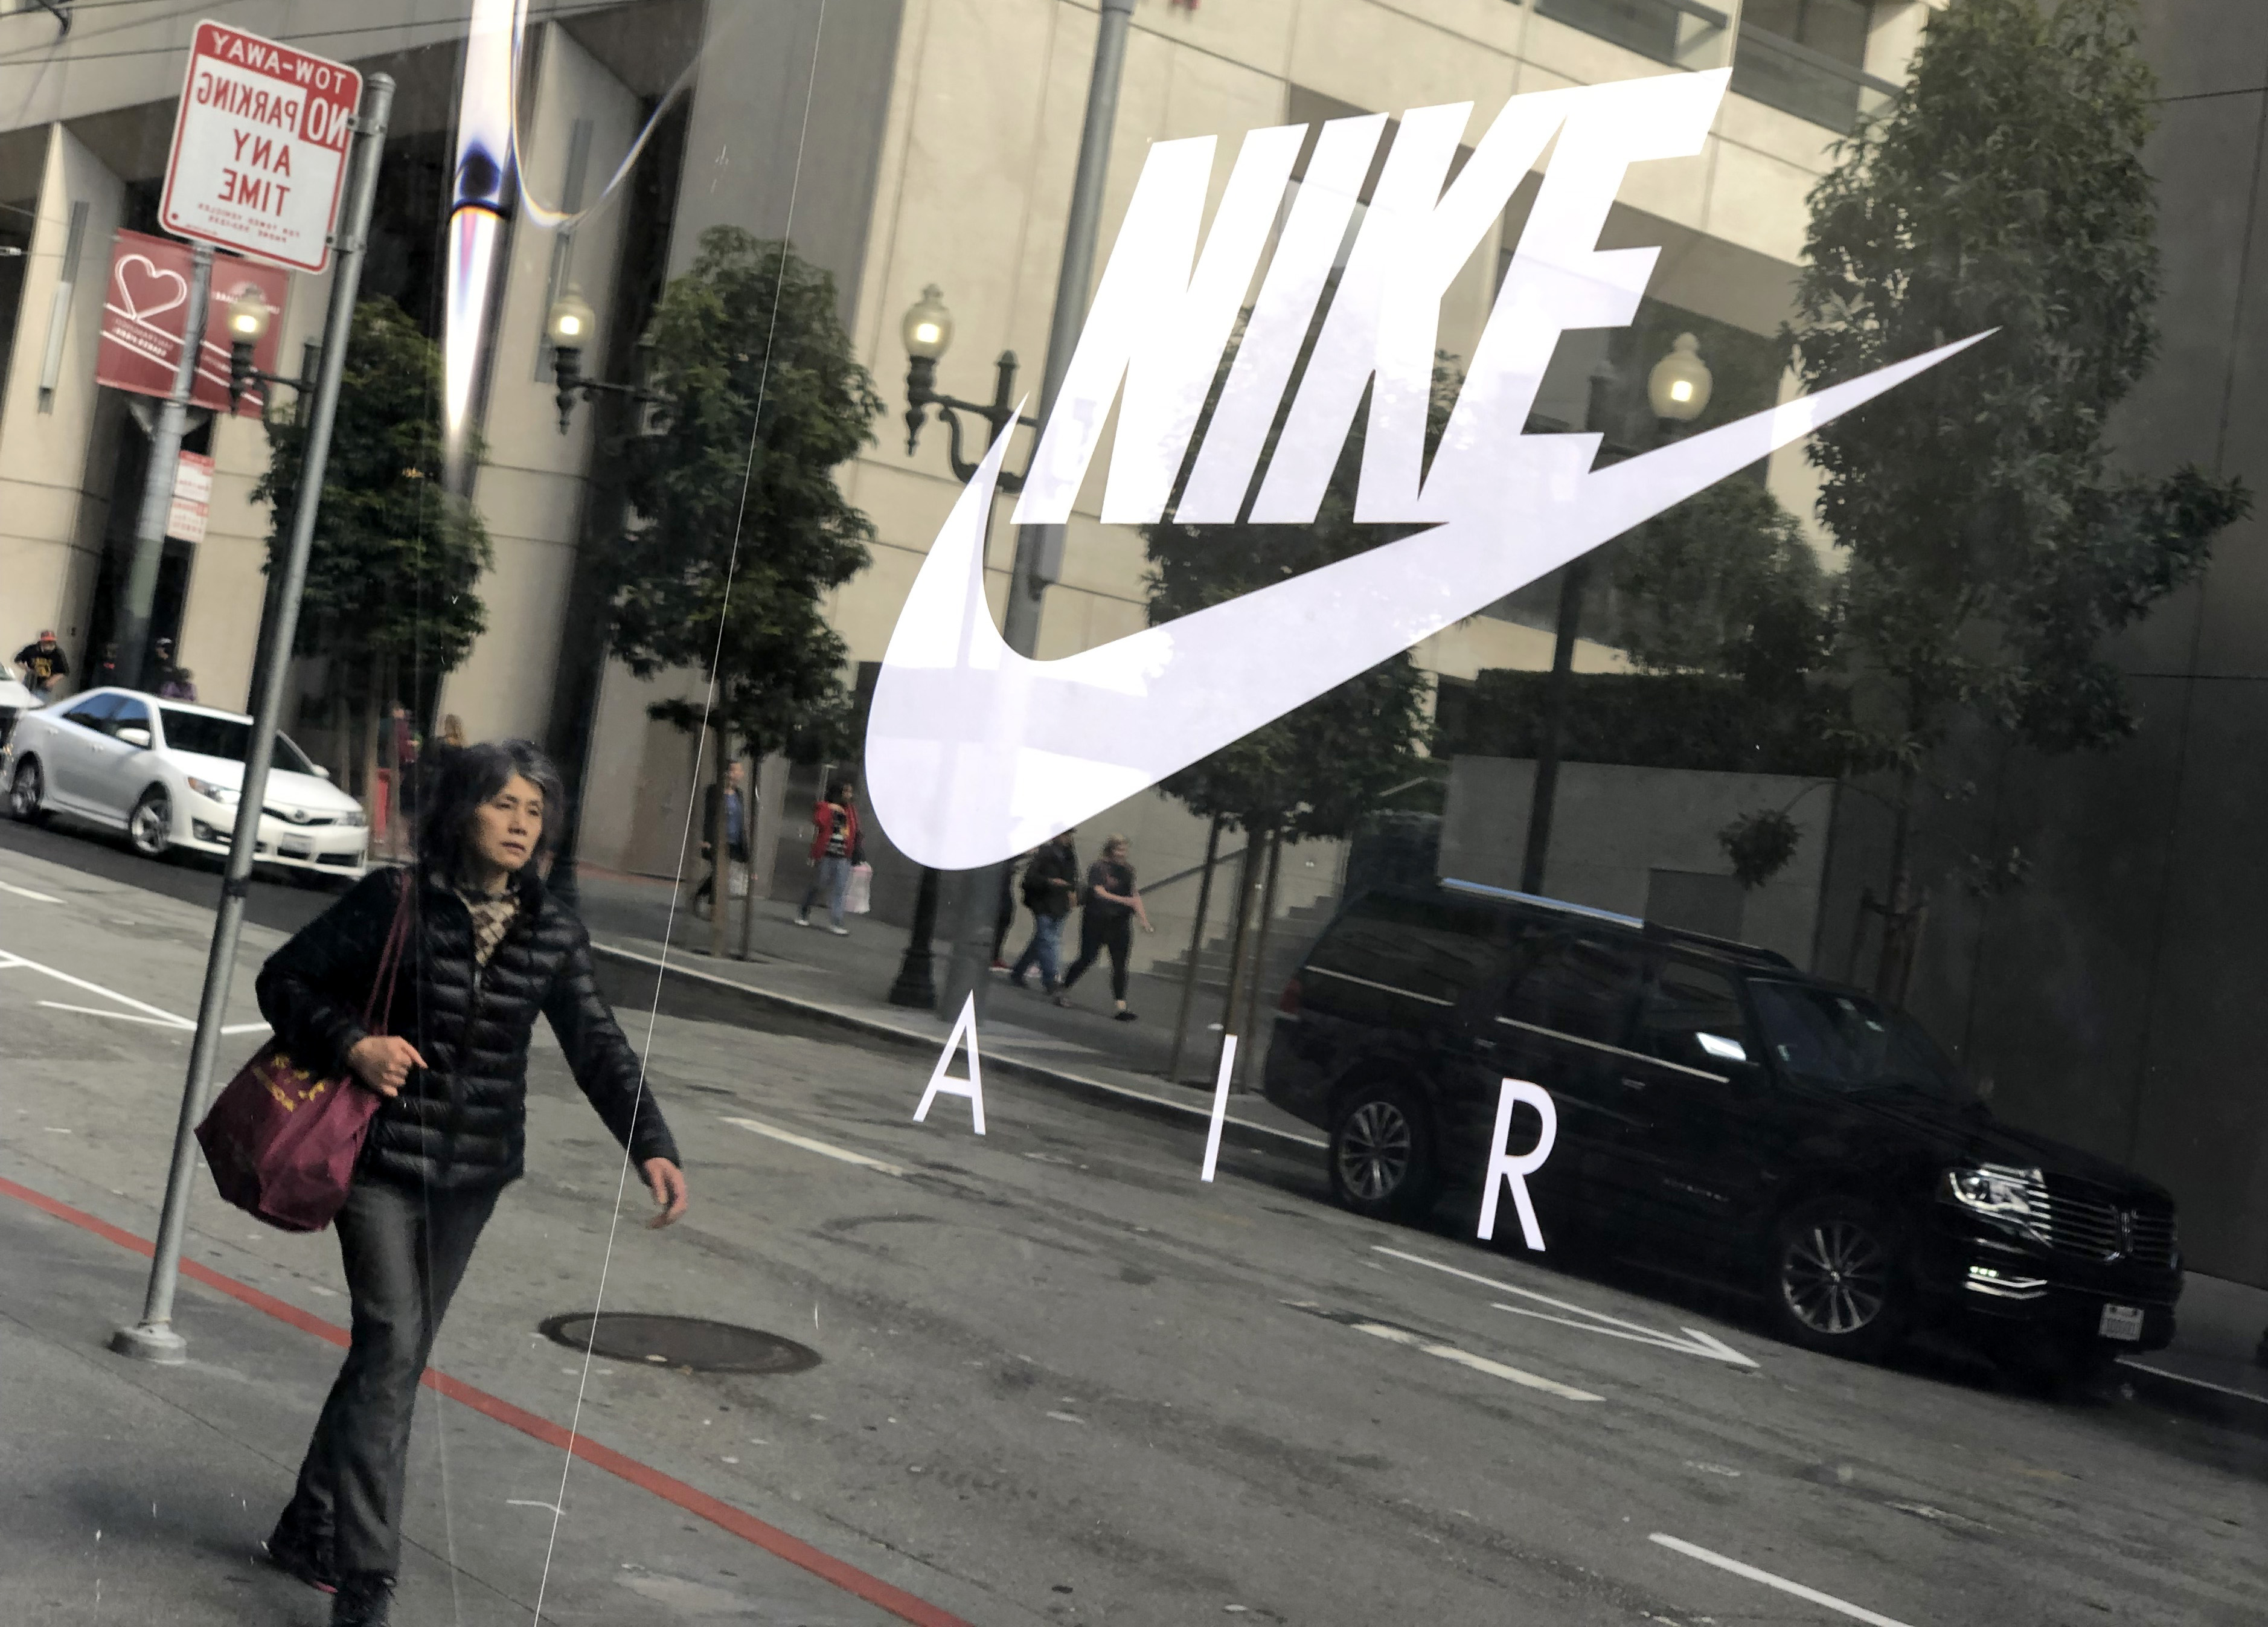 How Historians Got Nike To Pull An Ad Campaign In Under Six Hours The Washington Post